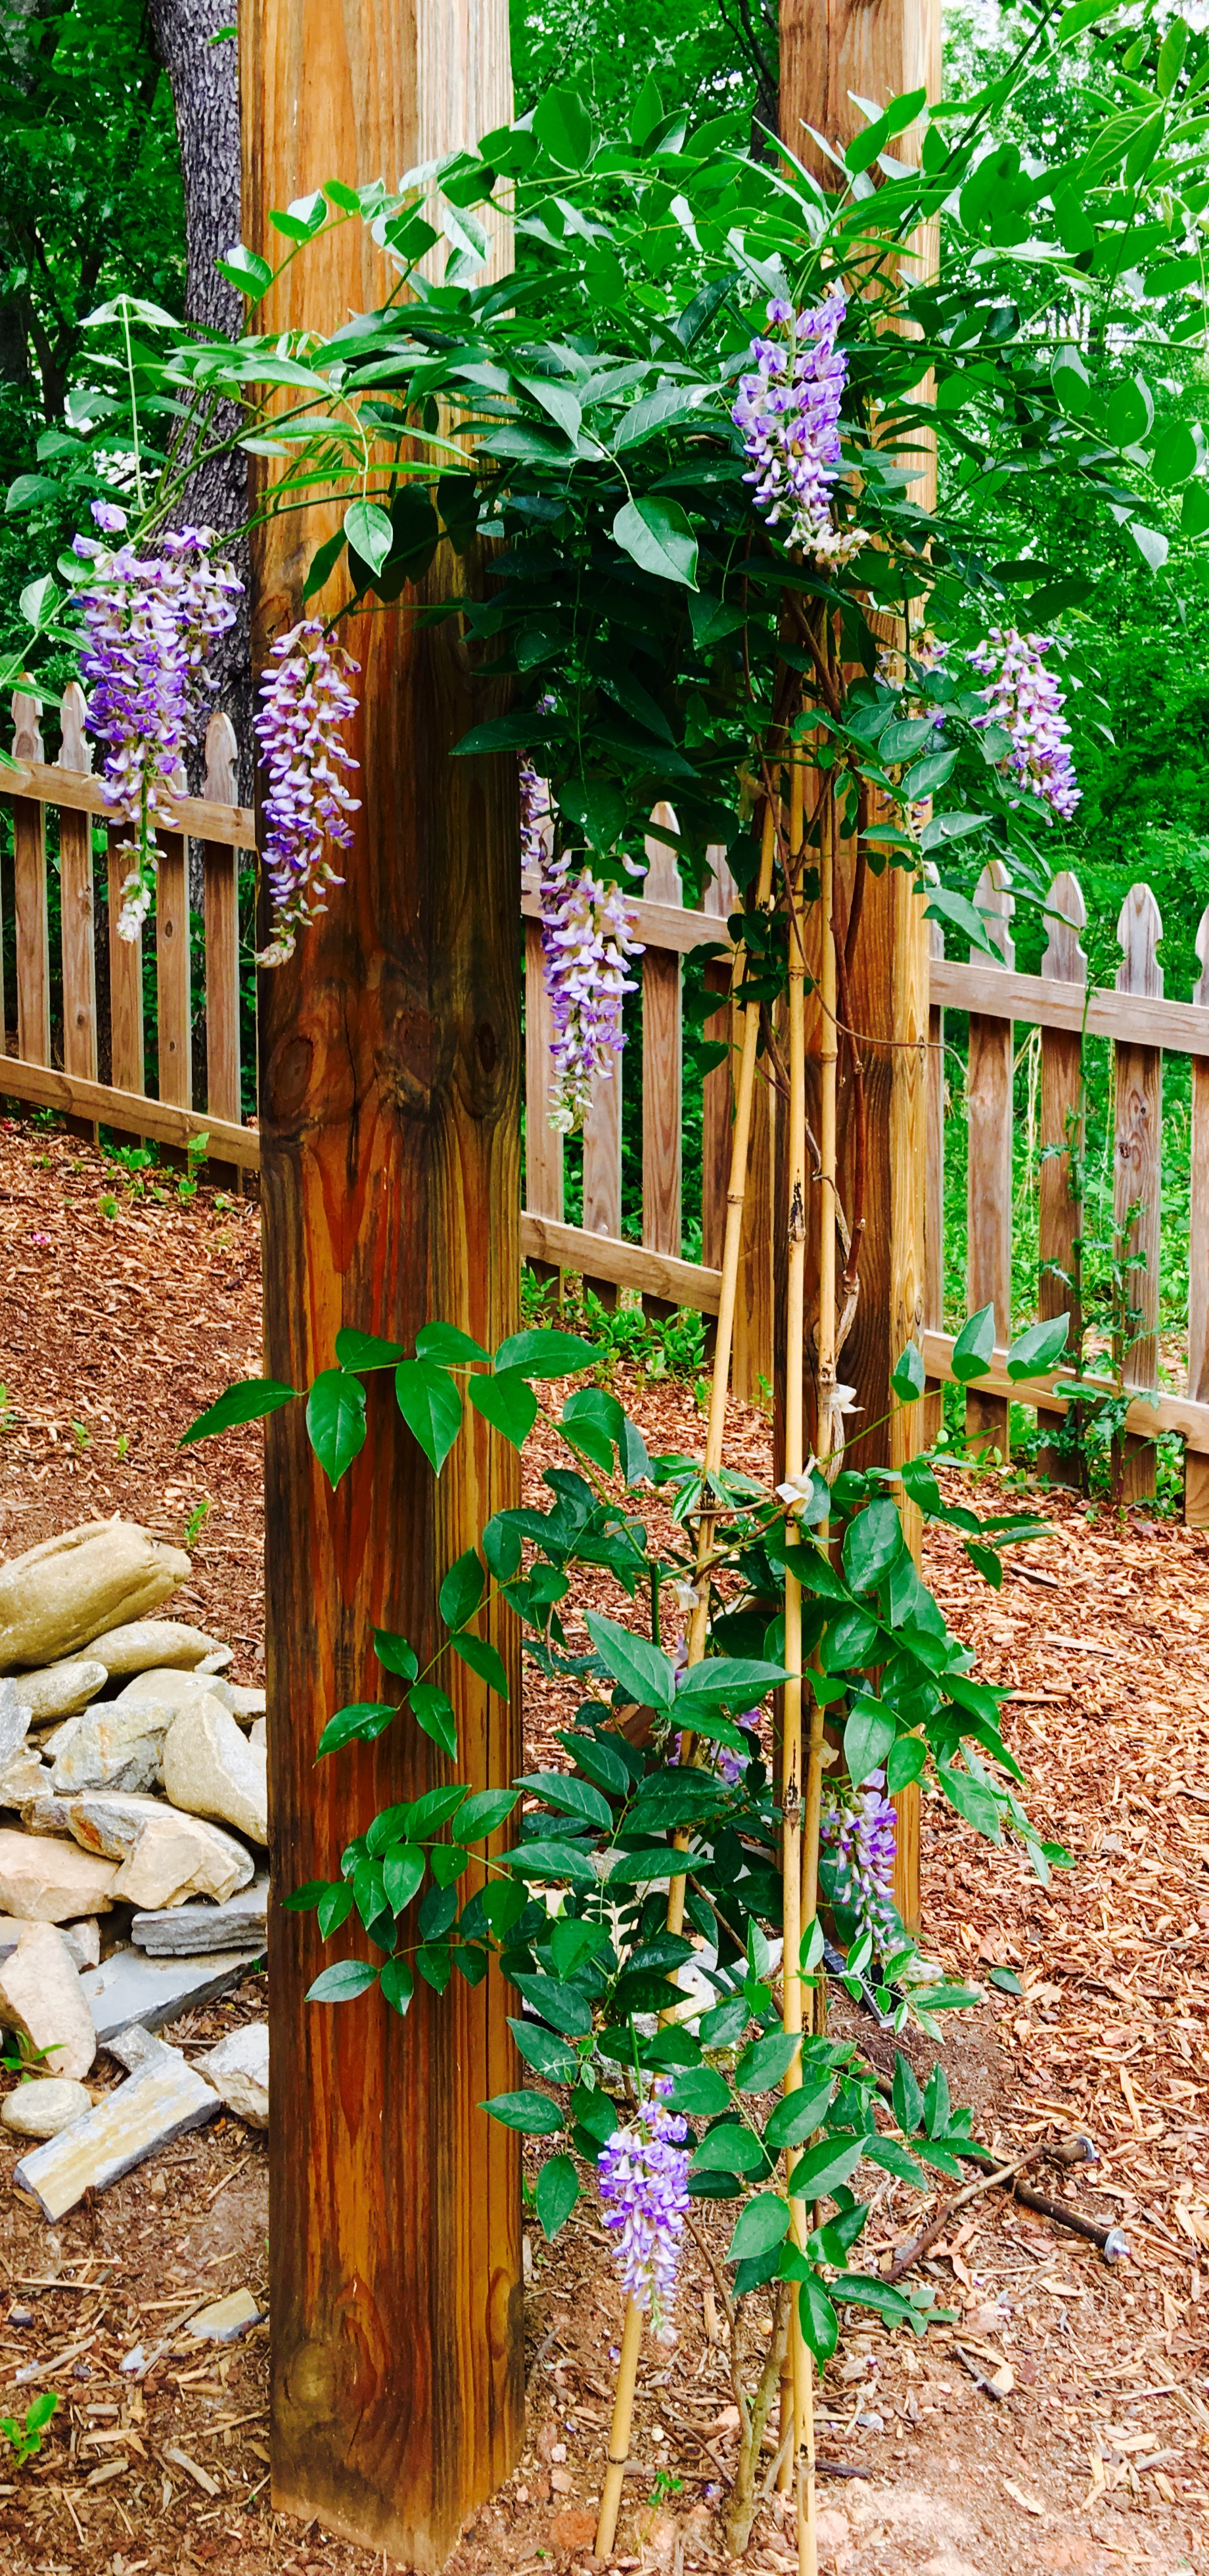 Wisteria. Some people shy away from wisteria, but Becky was not deterred.